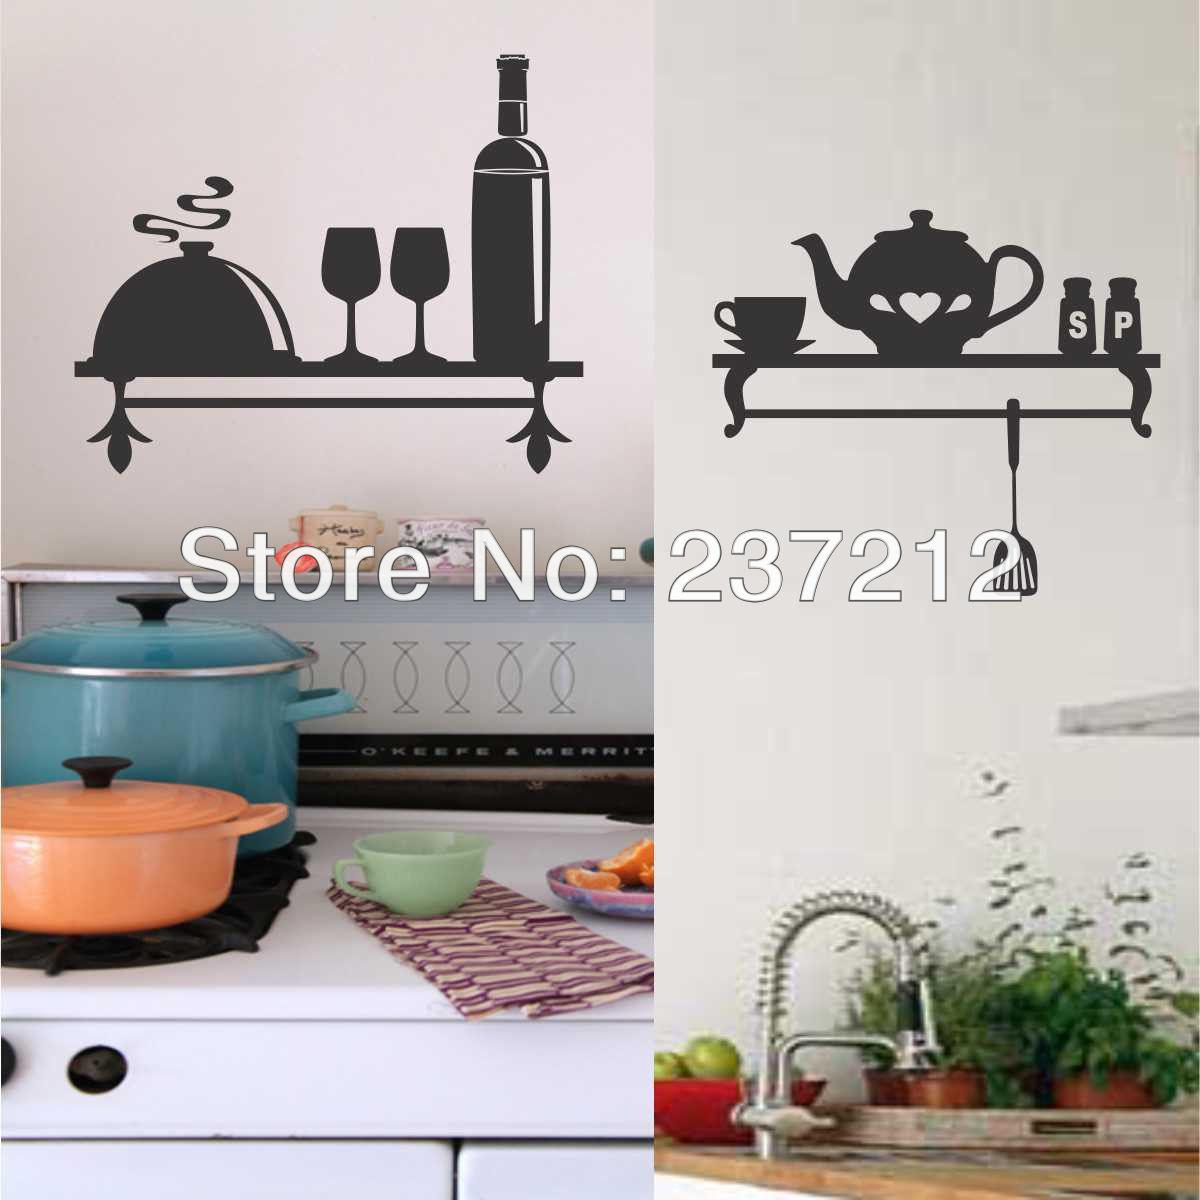 Kitchen Wall Decal Decorative Vinyl Shelf Indoor Lettering Teapot Wine  Choice Wall Stickers Wall Deals Wall Decal From Baby_helene, $13.05|  Dhgate.Com